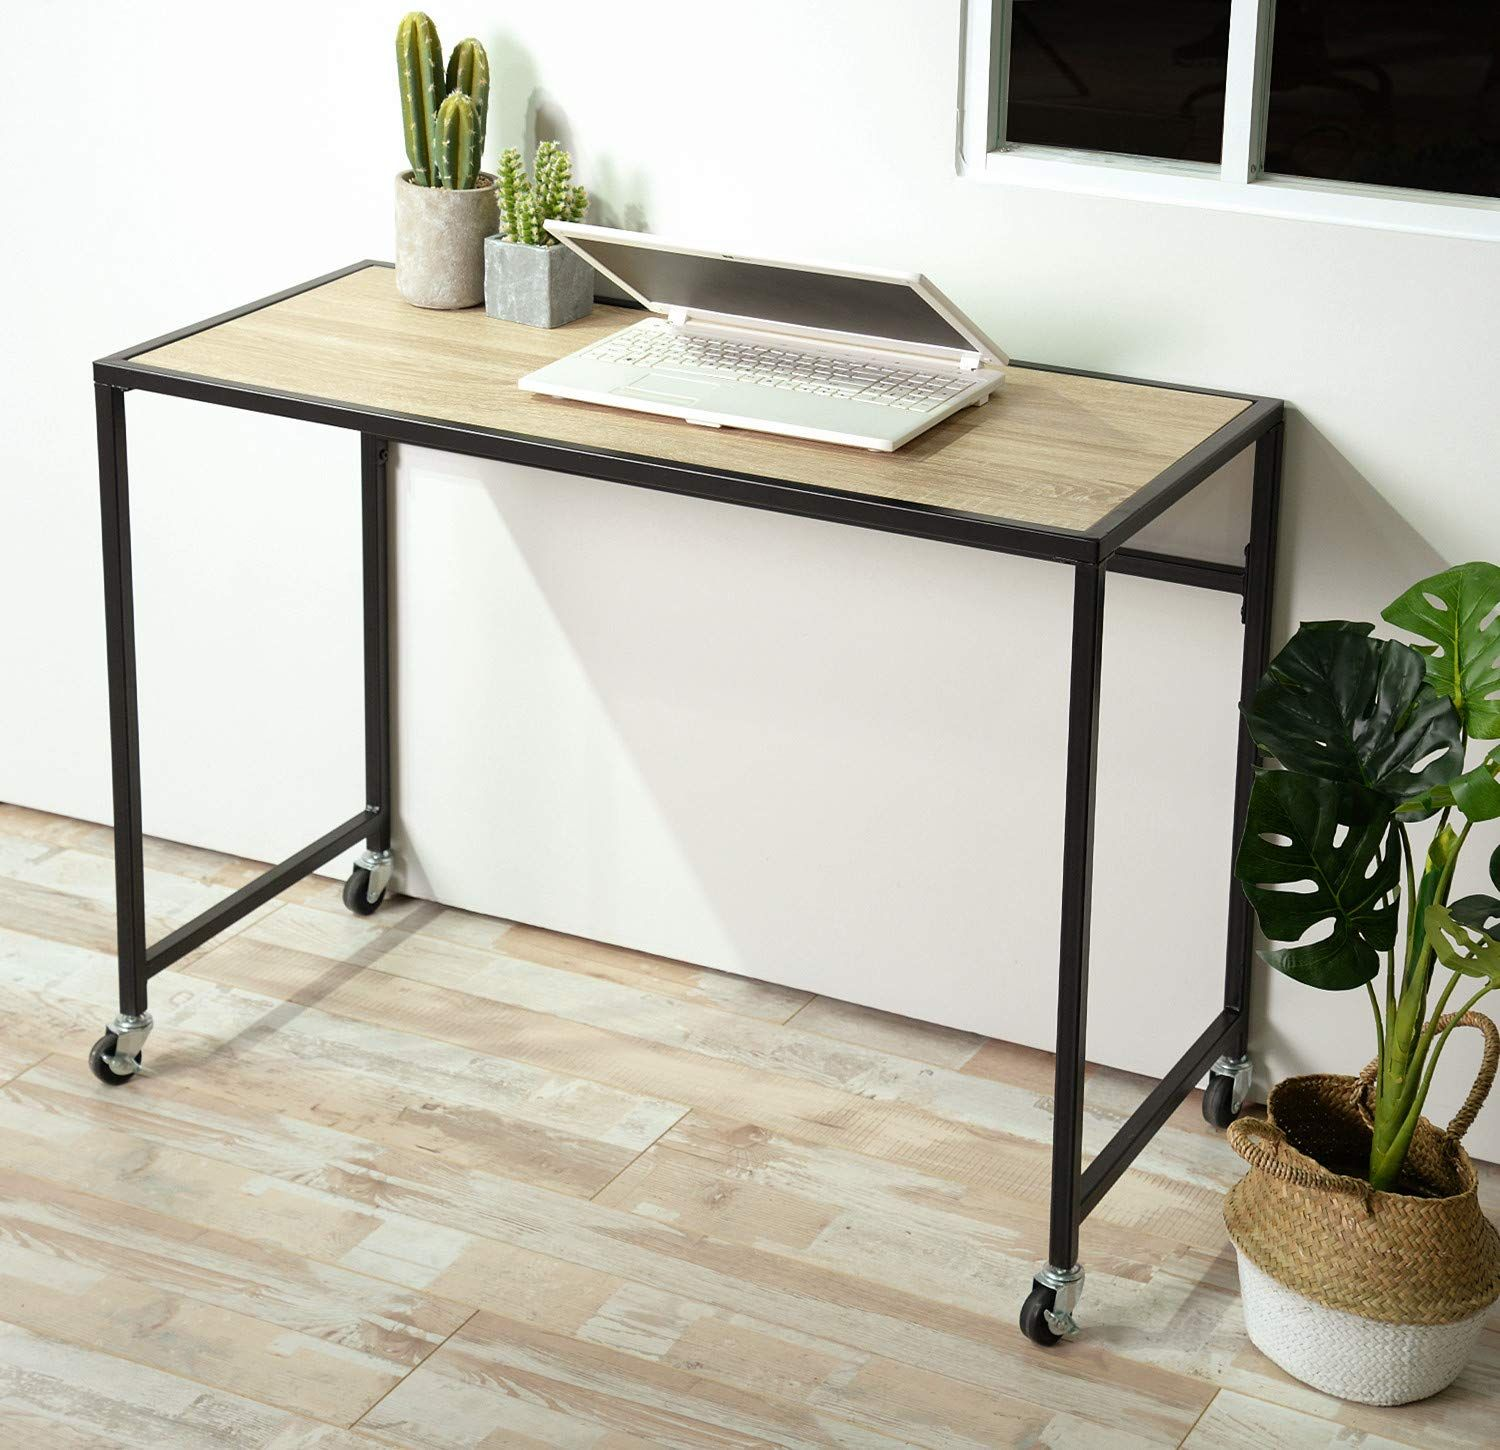 - Home Mobile Computer Desk, Writing Table, Furniture Deals